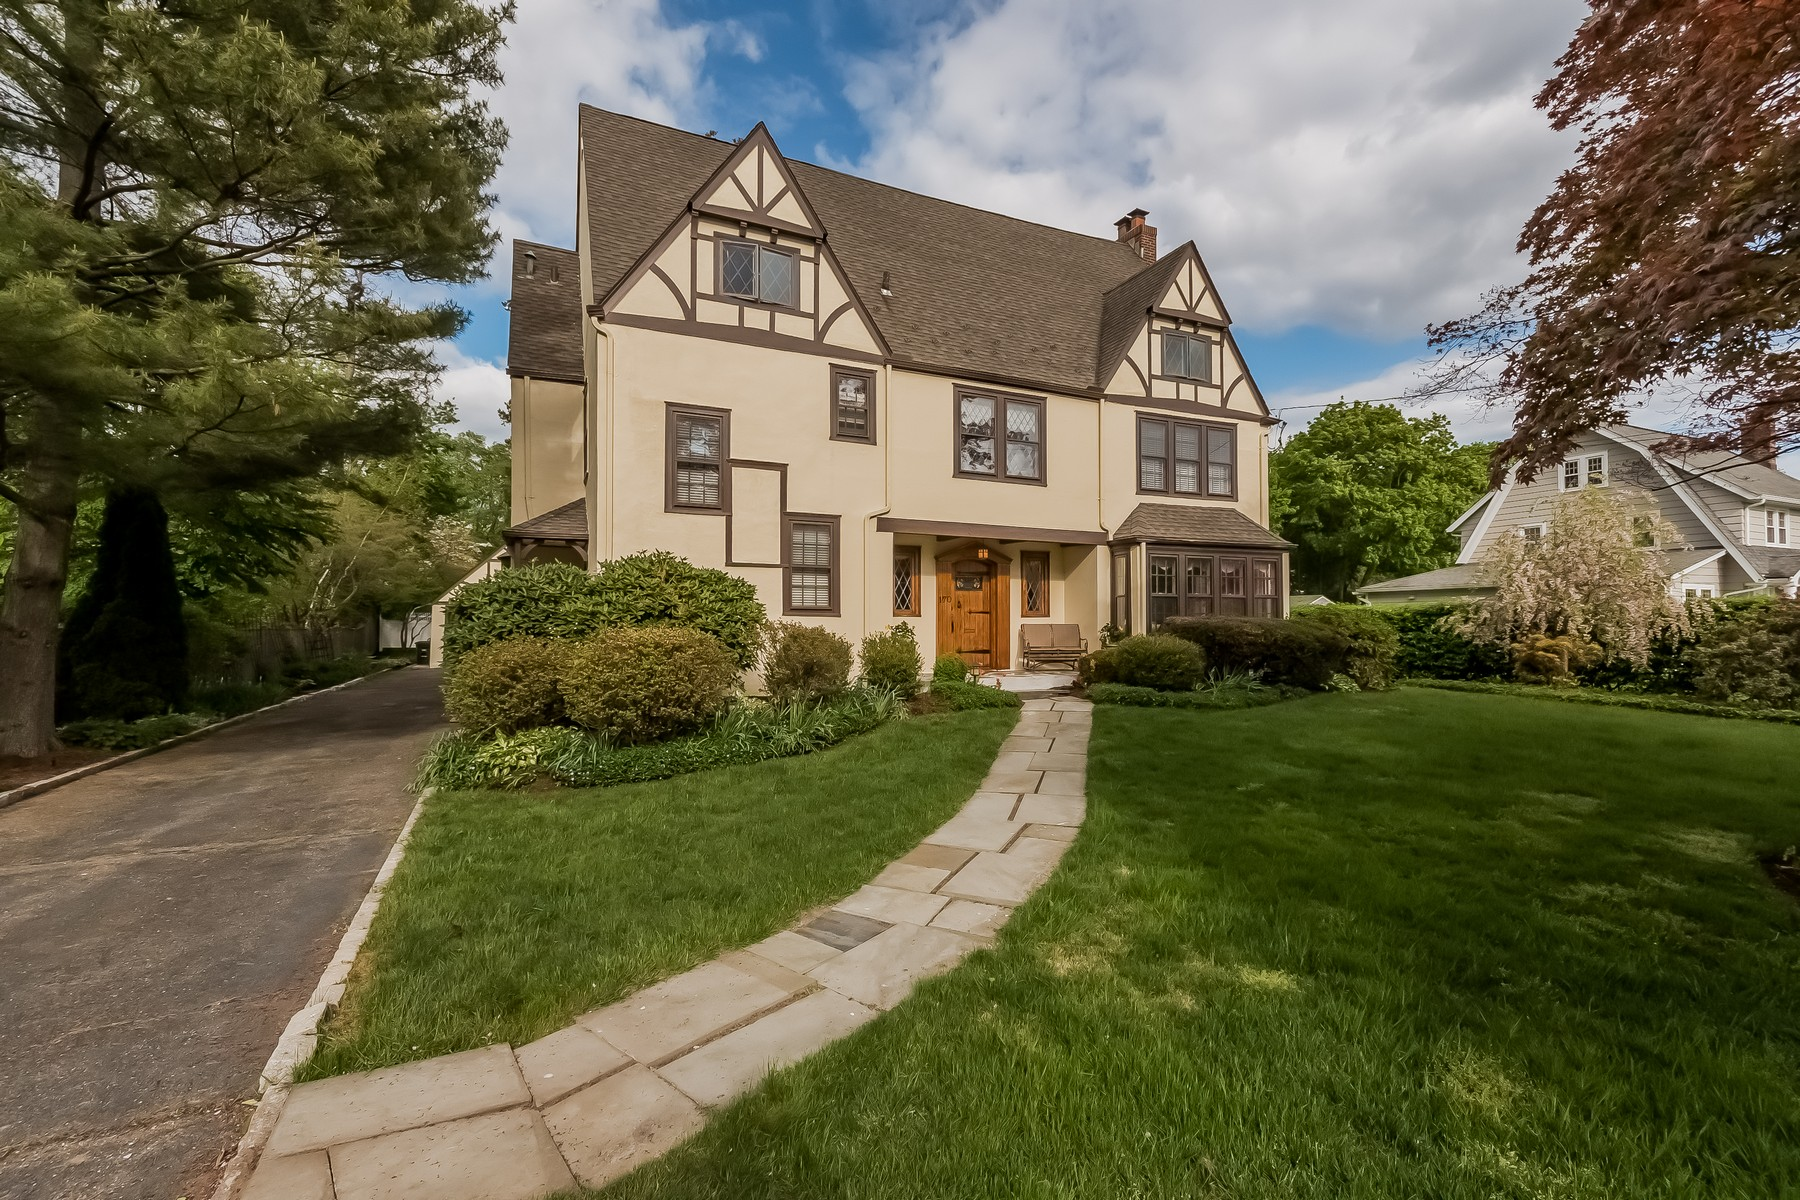 Single Family Home for Sale at Shippan Residence 170 Van Rensselaer Avenue Stamford, Connecticut 06902 United States